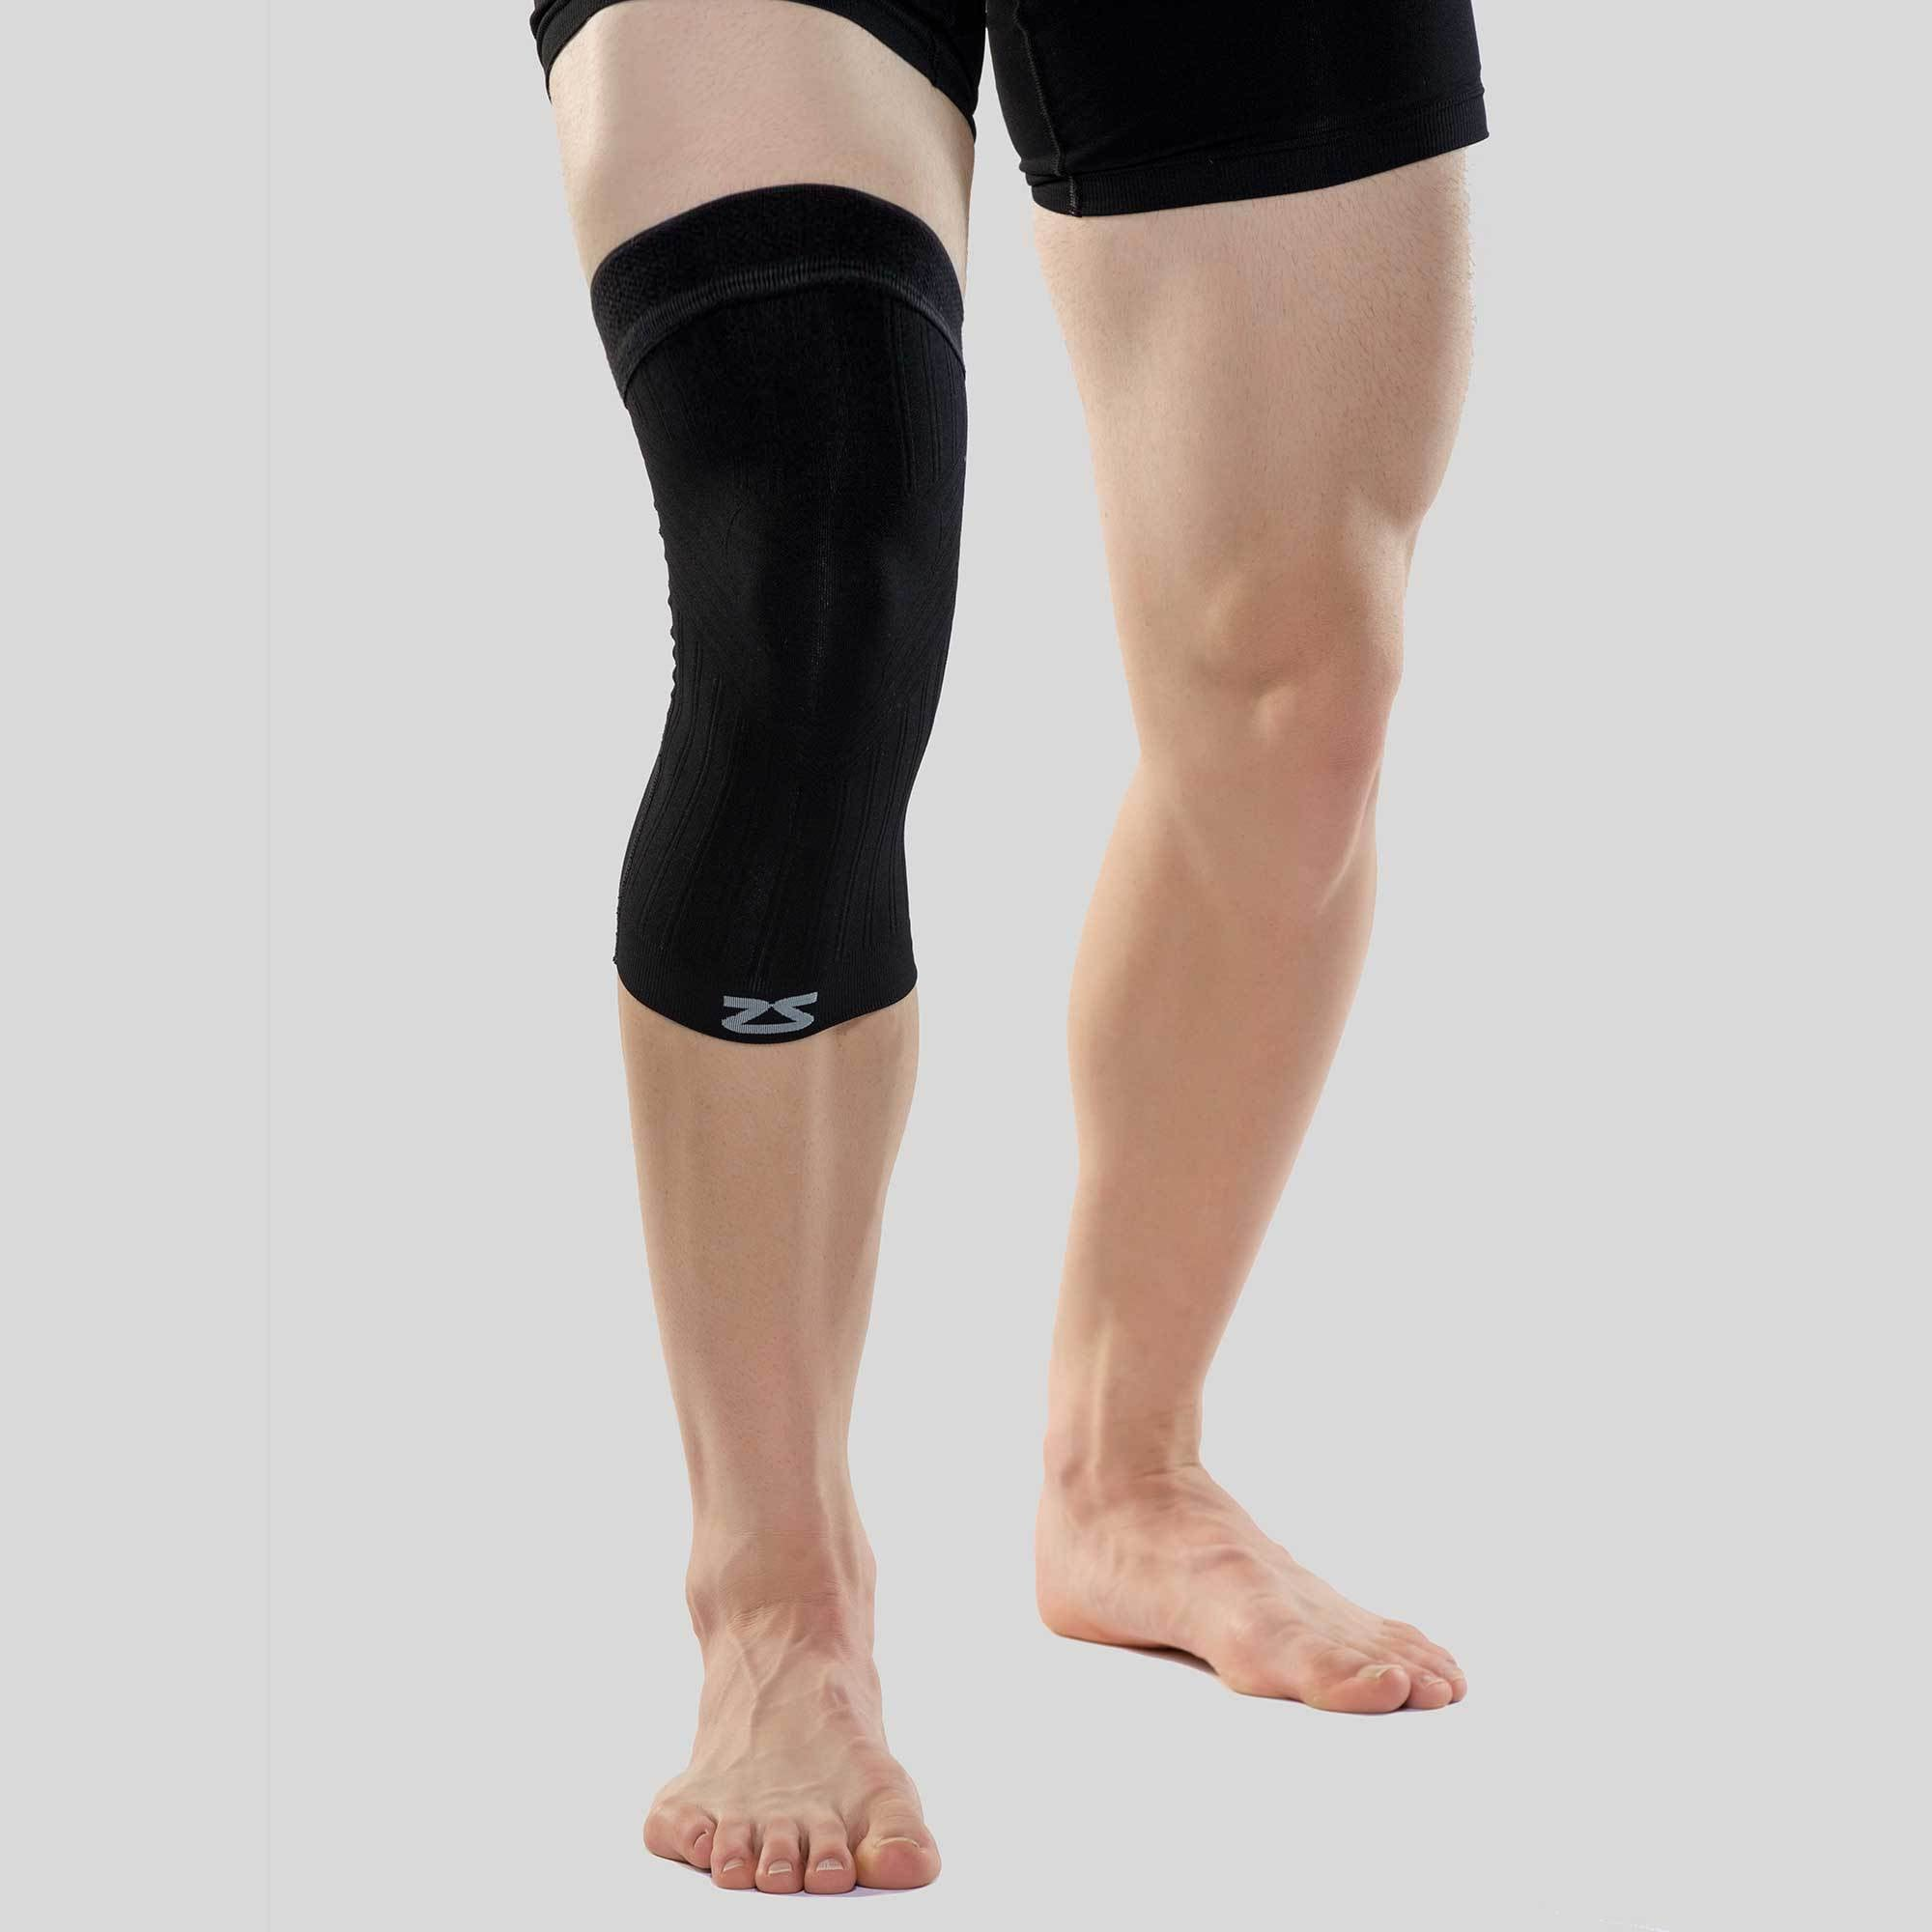 10f7930279 Compression Knee Sleeve - Relieve Knee Pain | Zensah